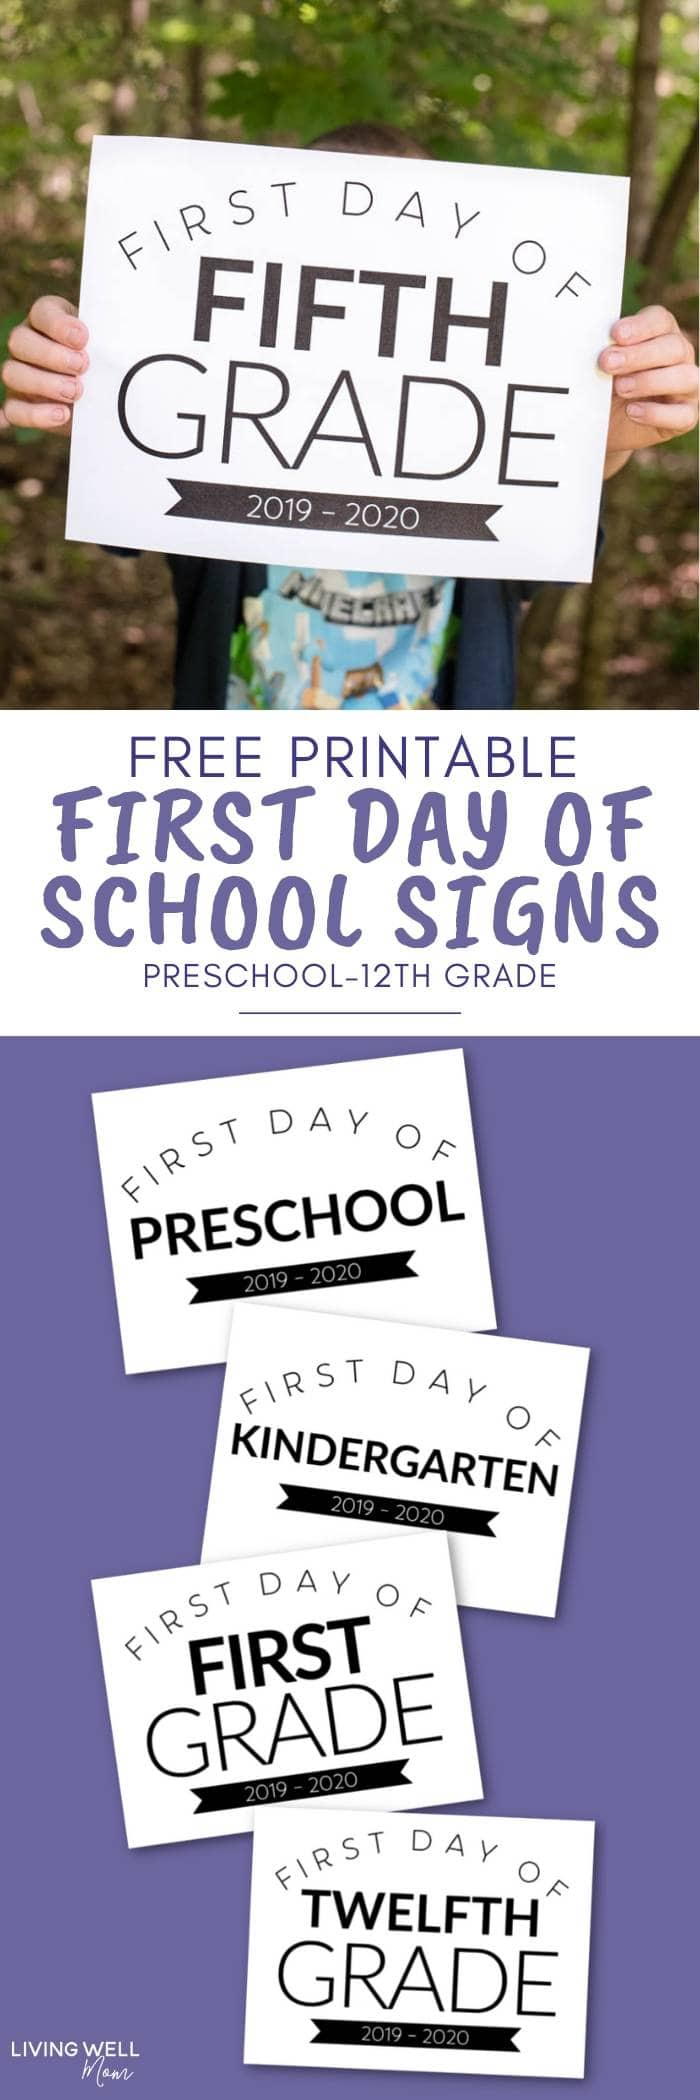 picture about 1st Day of School Sign Printable called Cost-free Printable Initial Working day of Faculty Signs or symptoms for All Grades